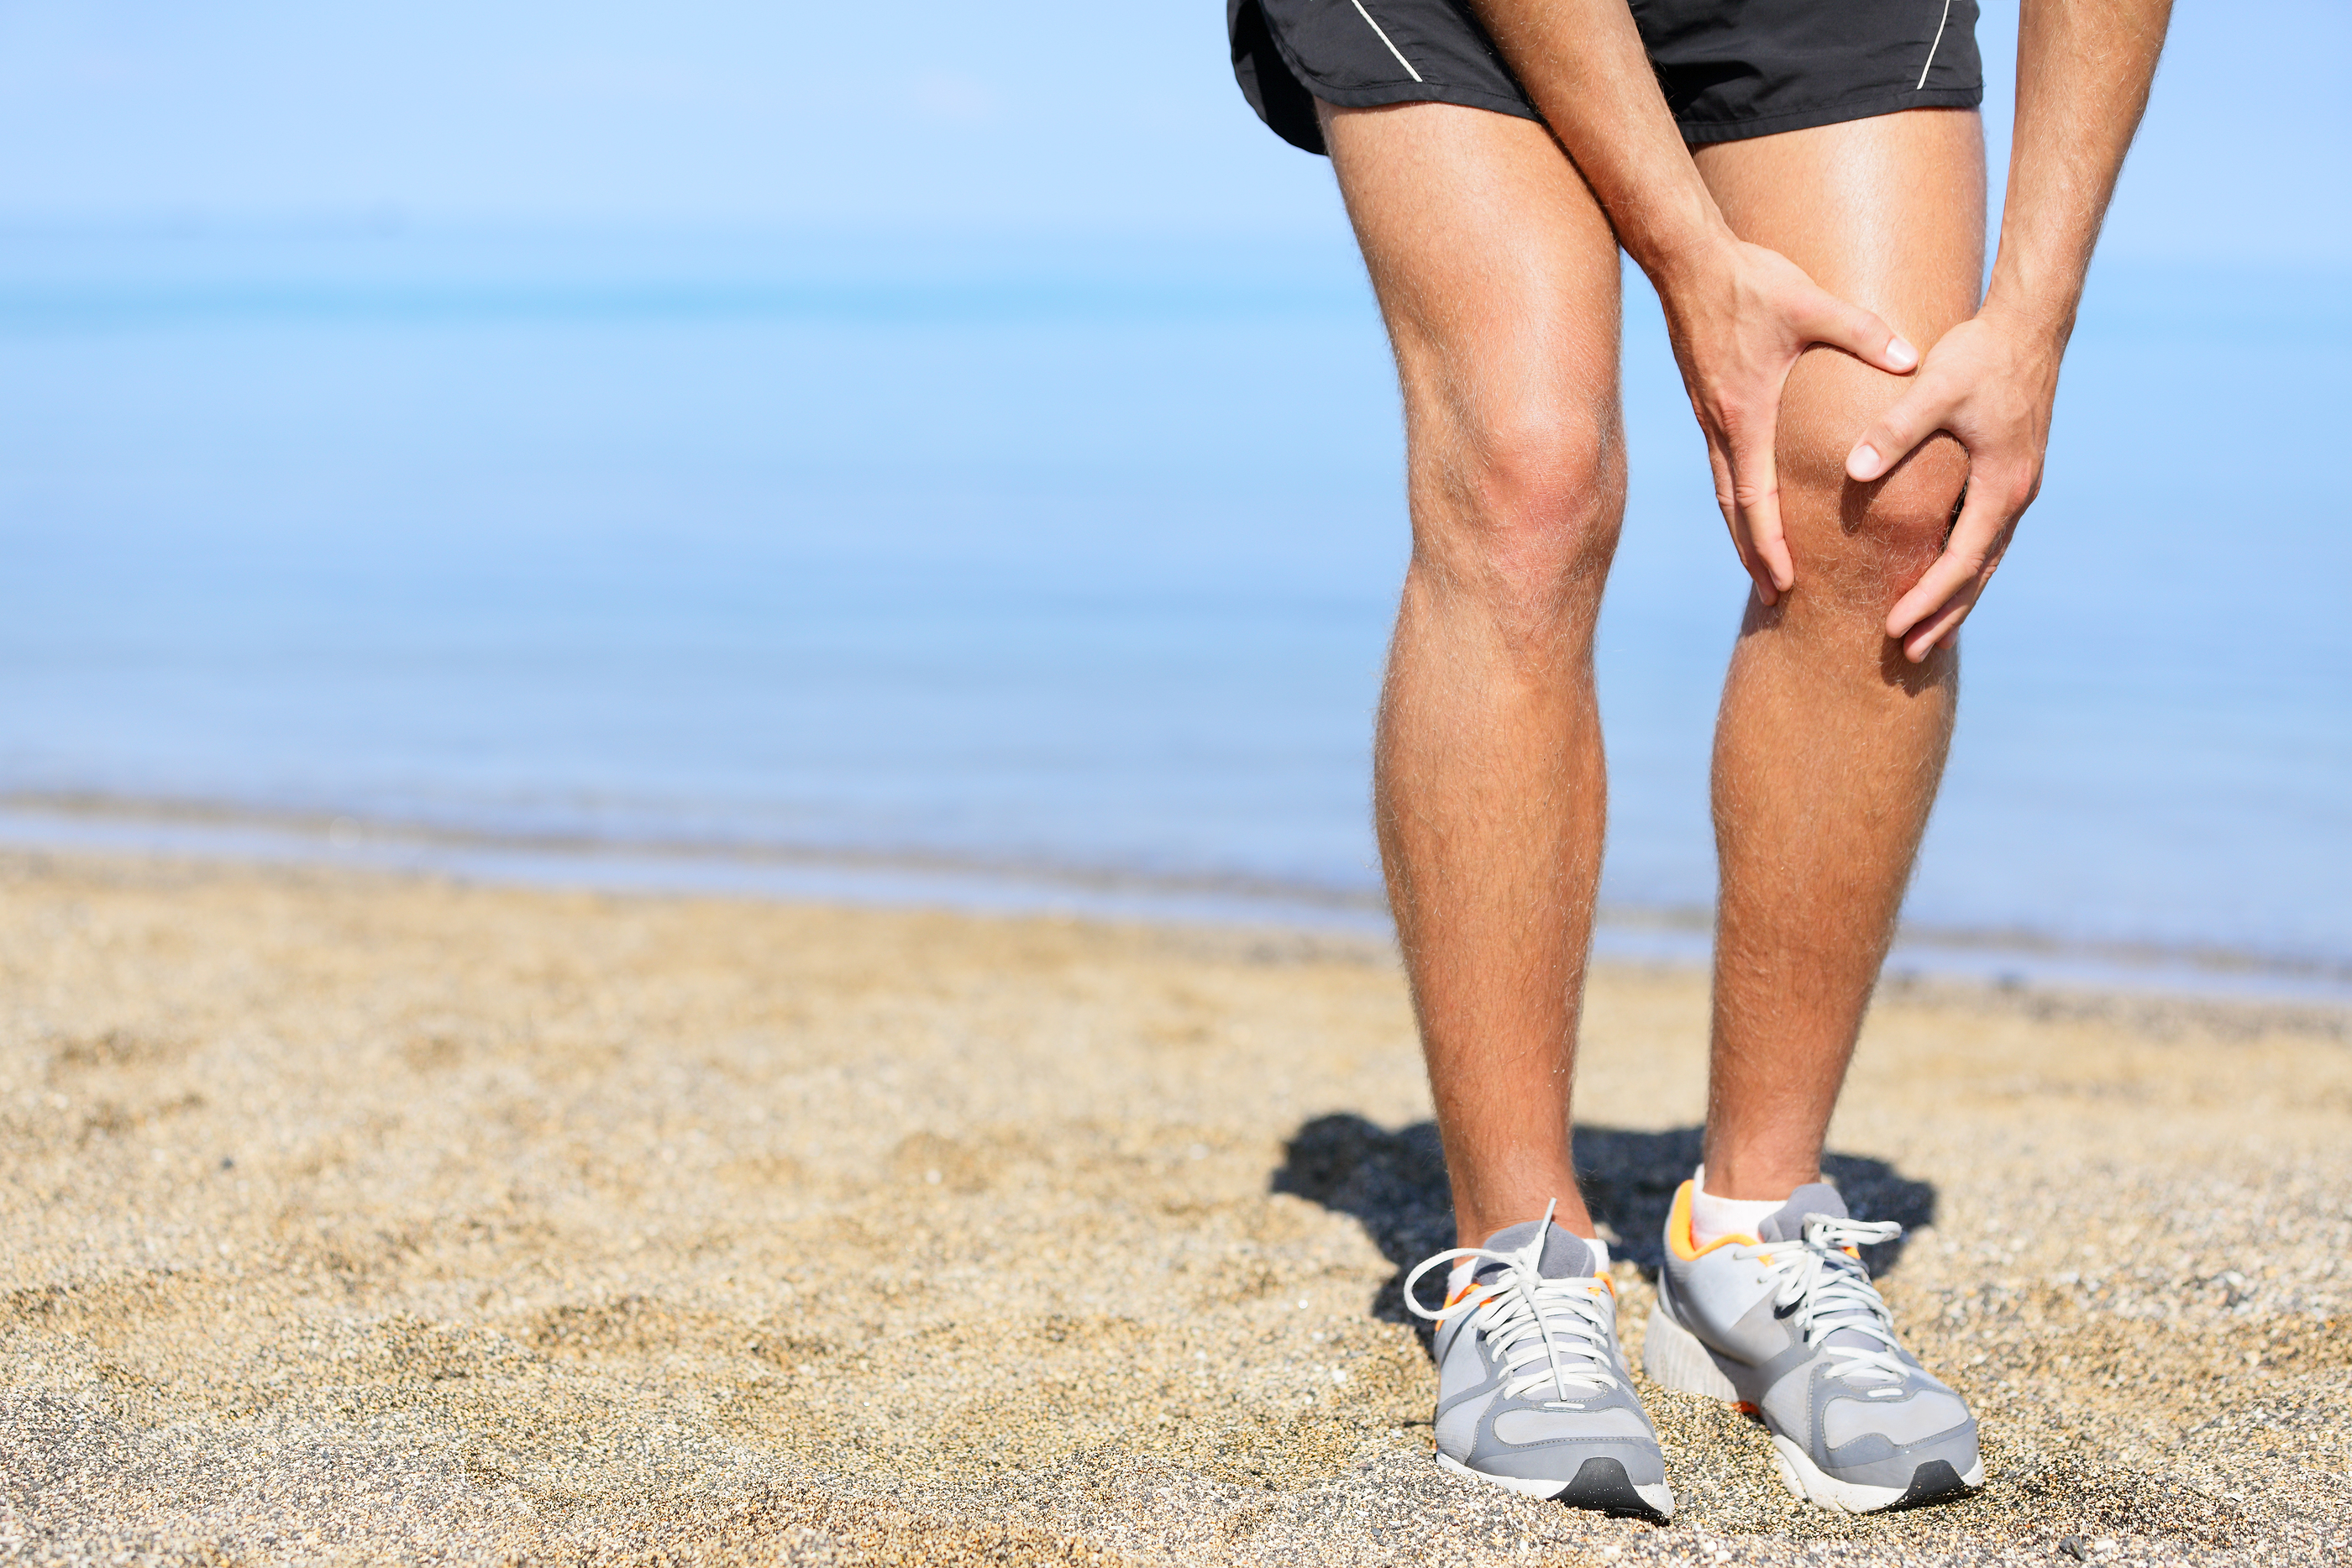 How Can A Chiropractor Treat IT Band Syndrome?